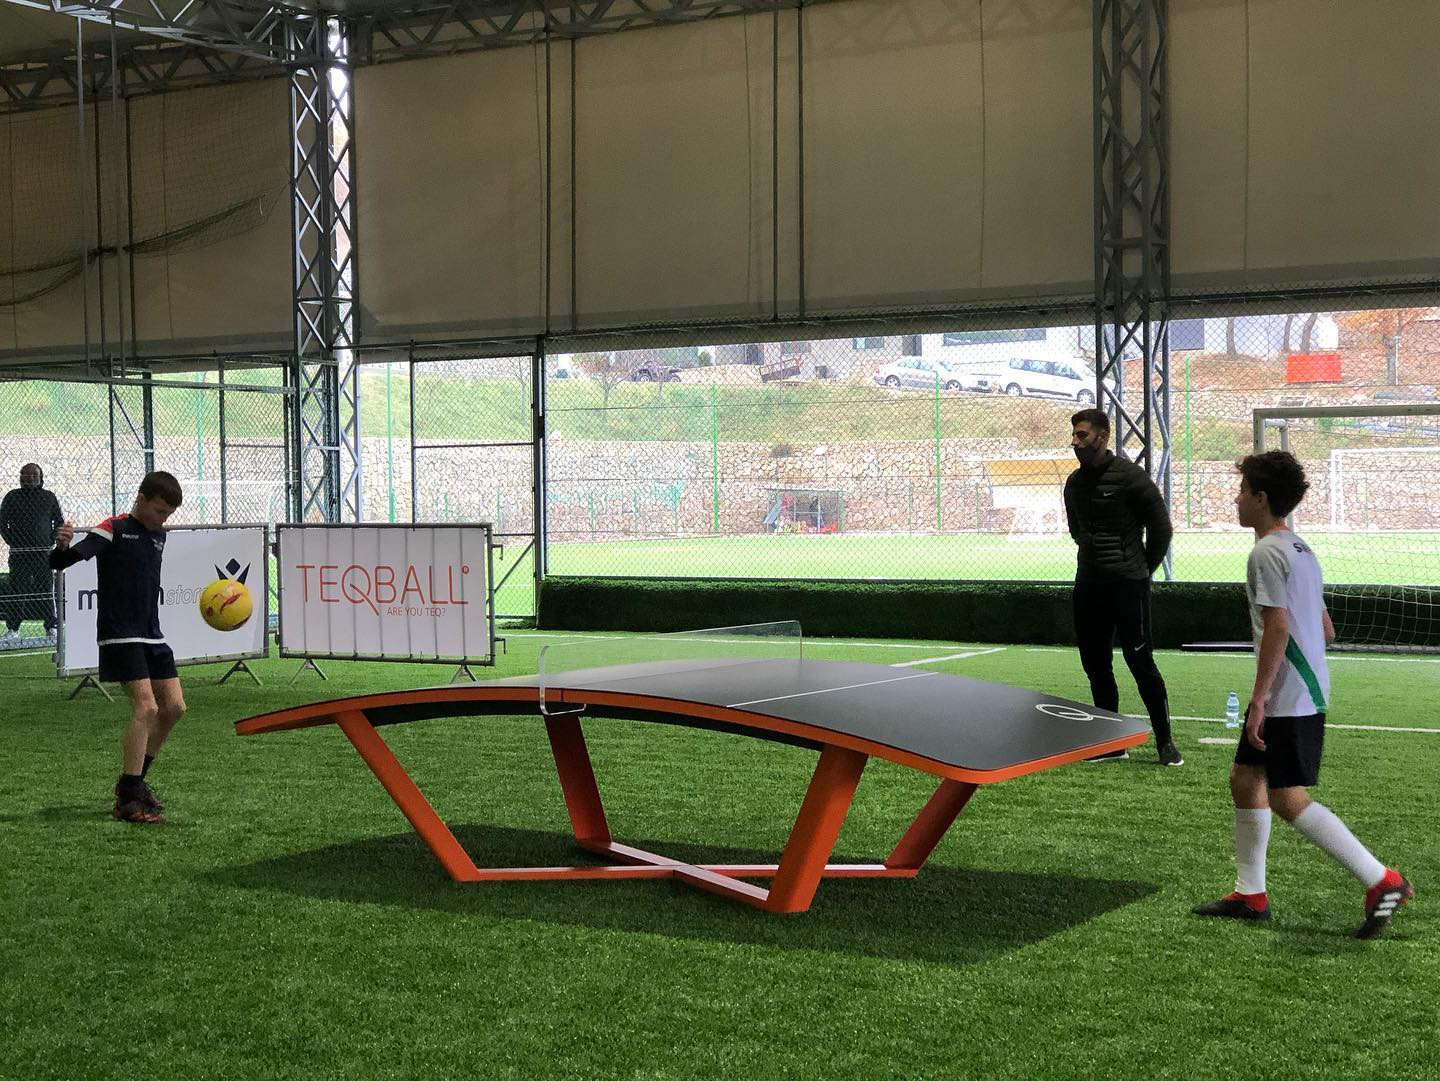 Teqball Albania organise two youth tournaments to aid development of sport